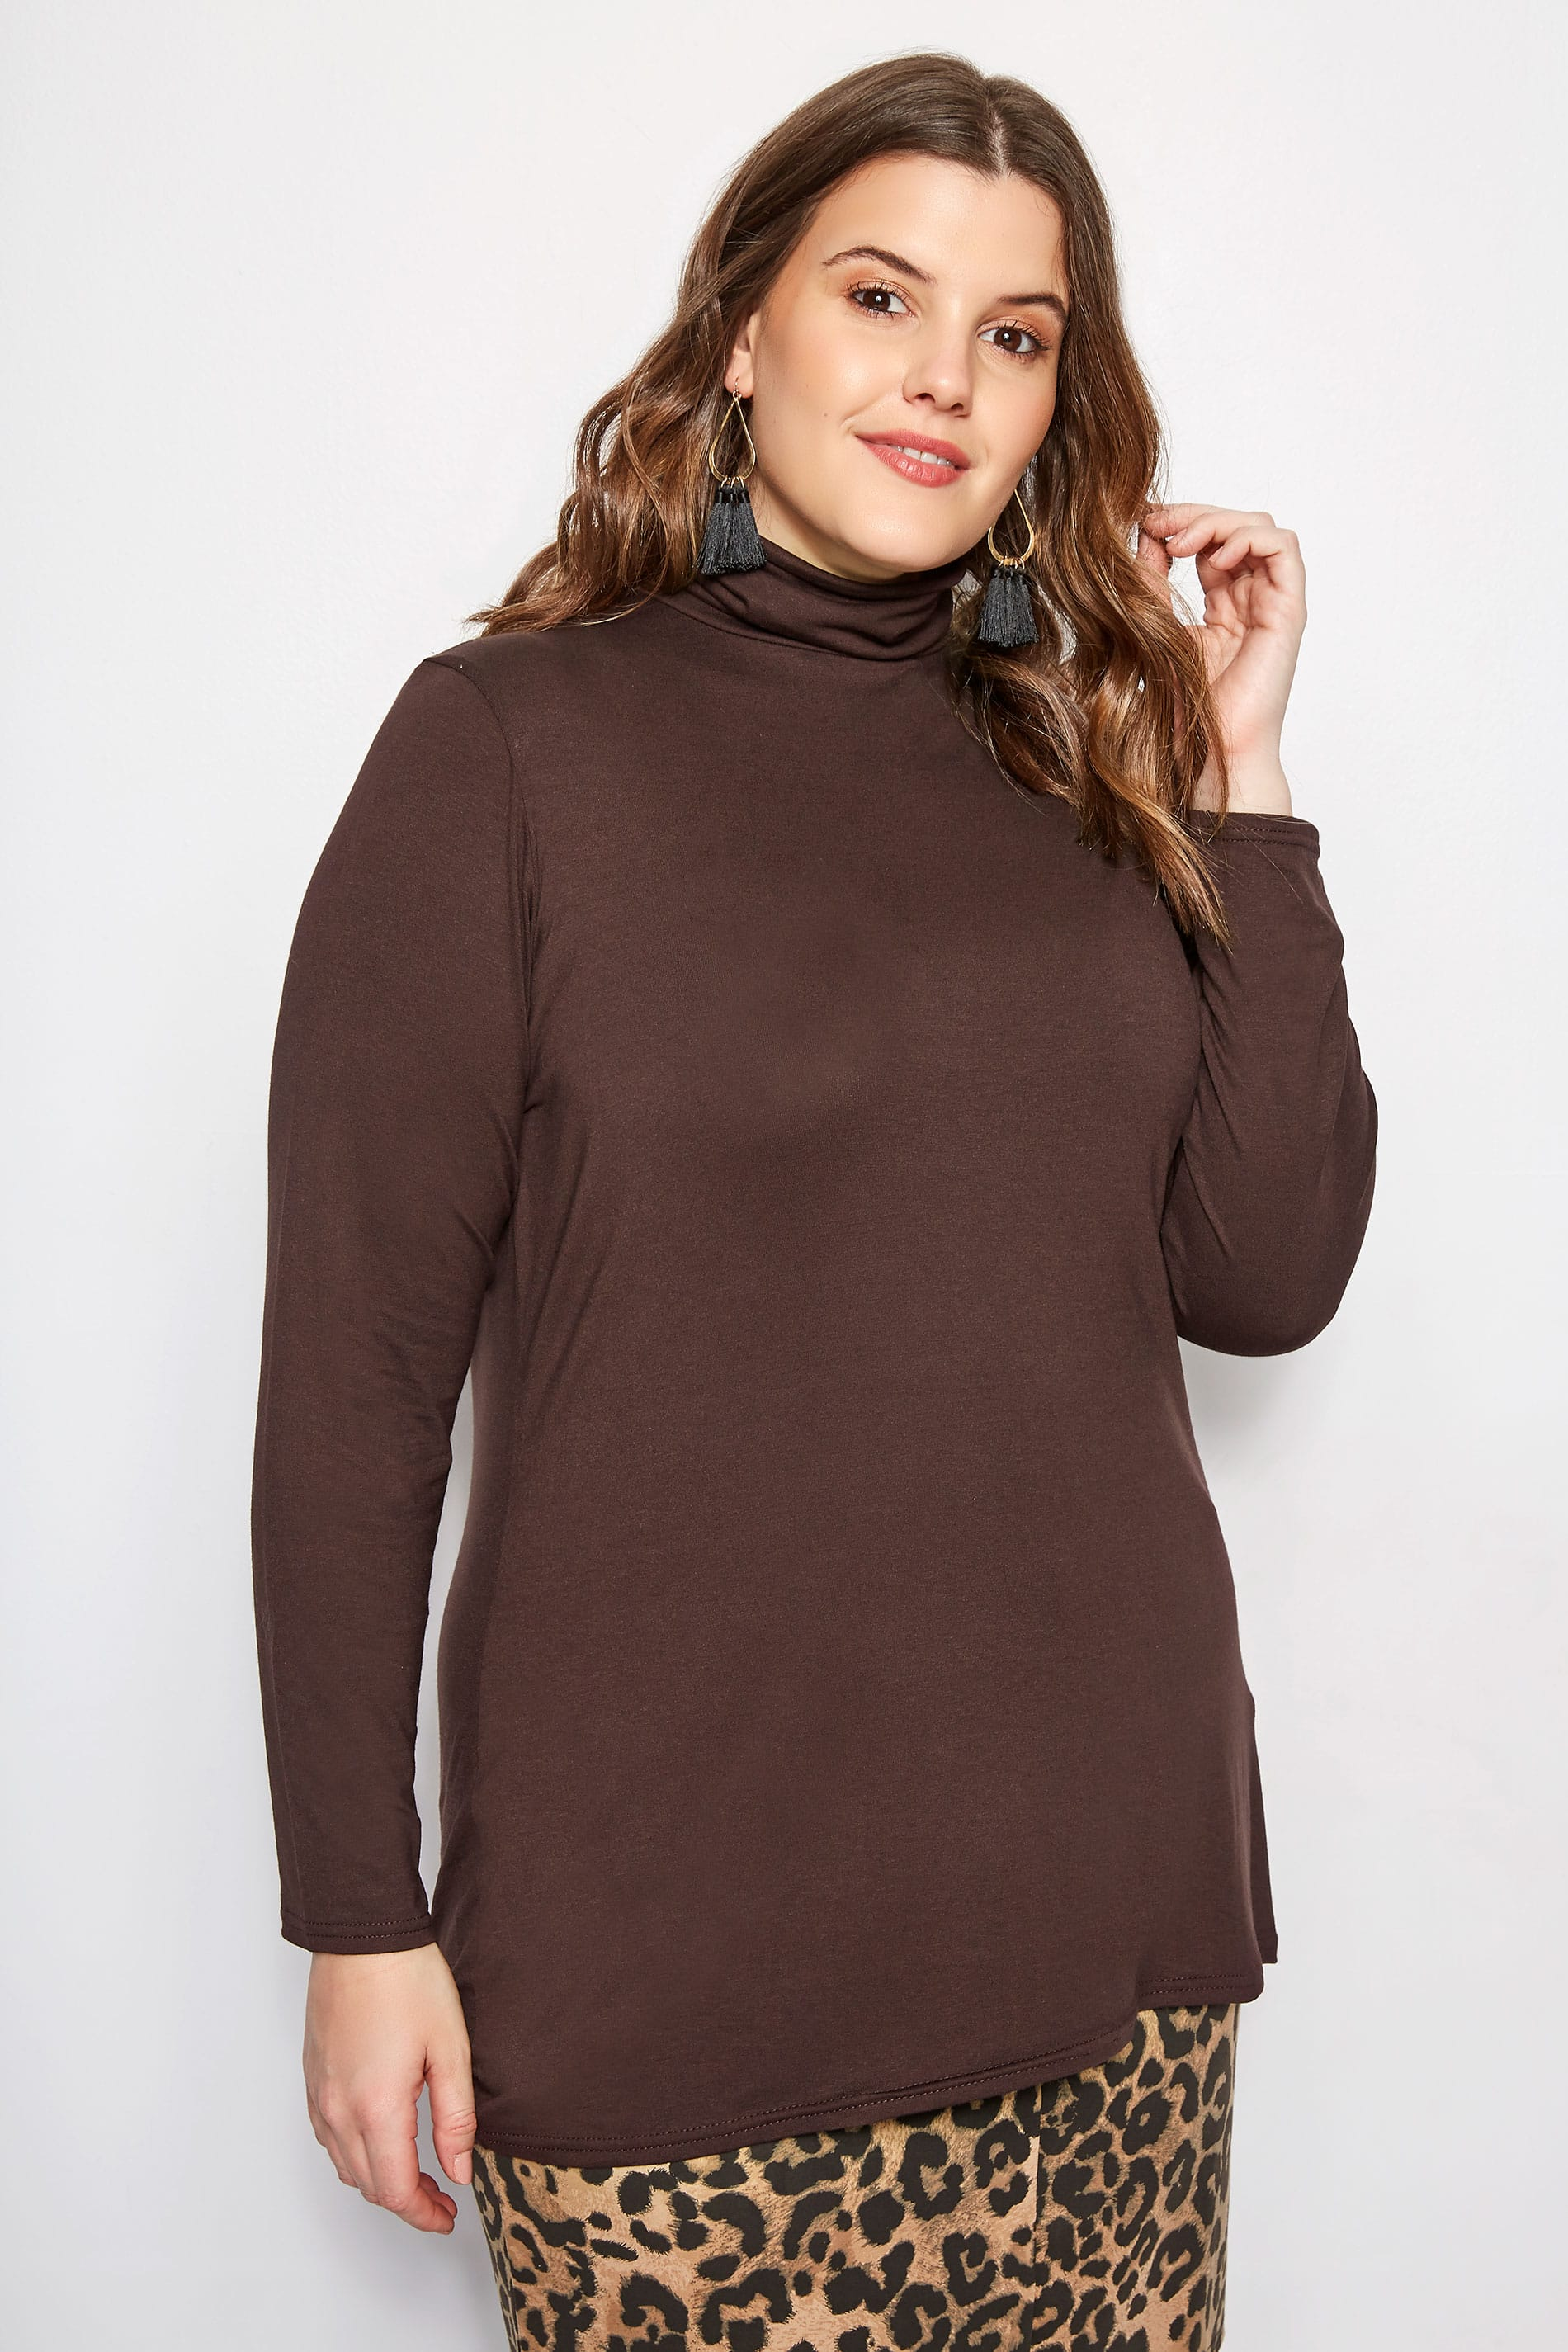 Brown Turtleneck Top